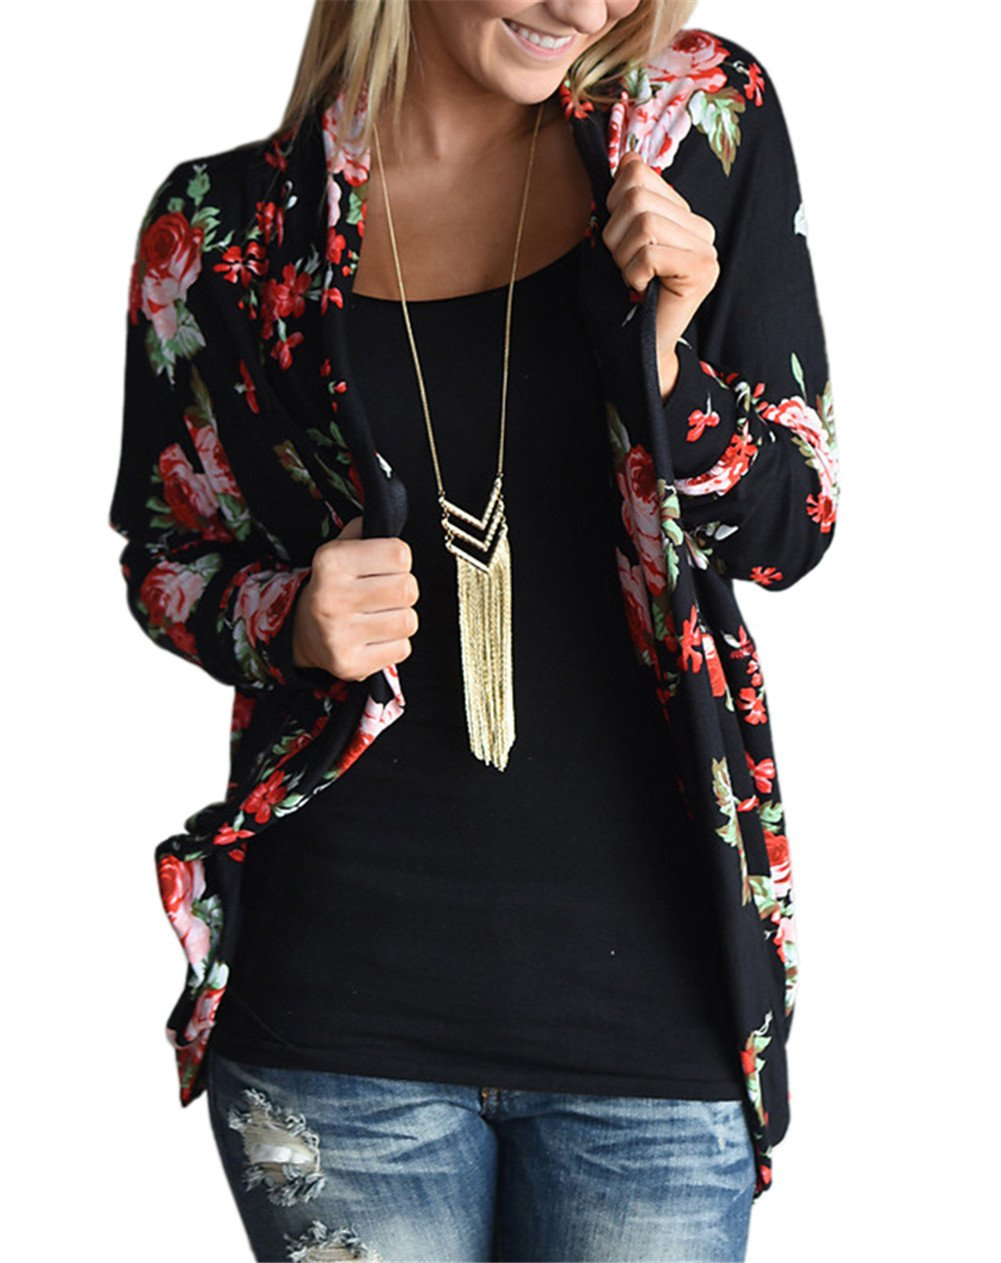 Moxeay Women Long Sleeve Wrap Outwear Tops Floral Print Cardigans Casual Coat (X-Large, Black-A)